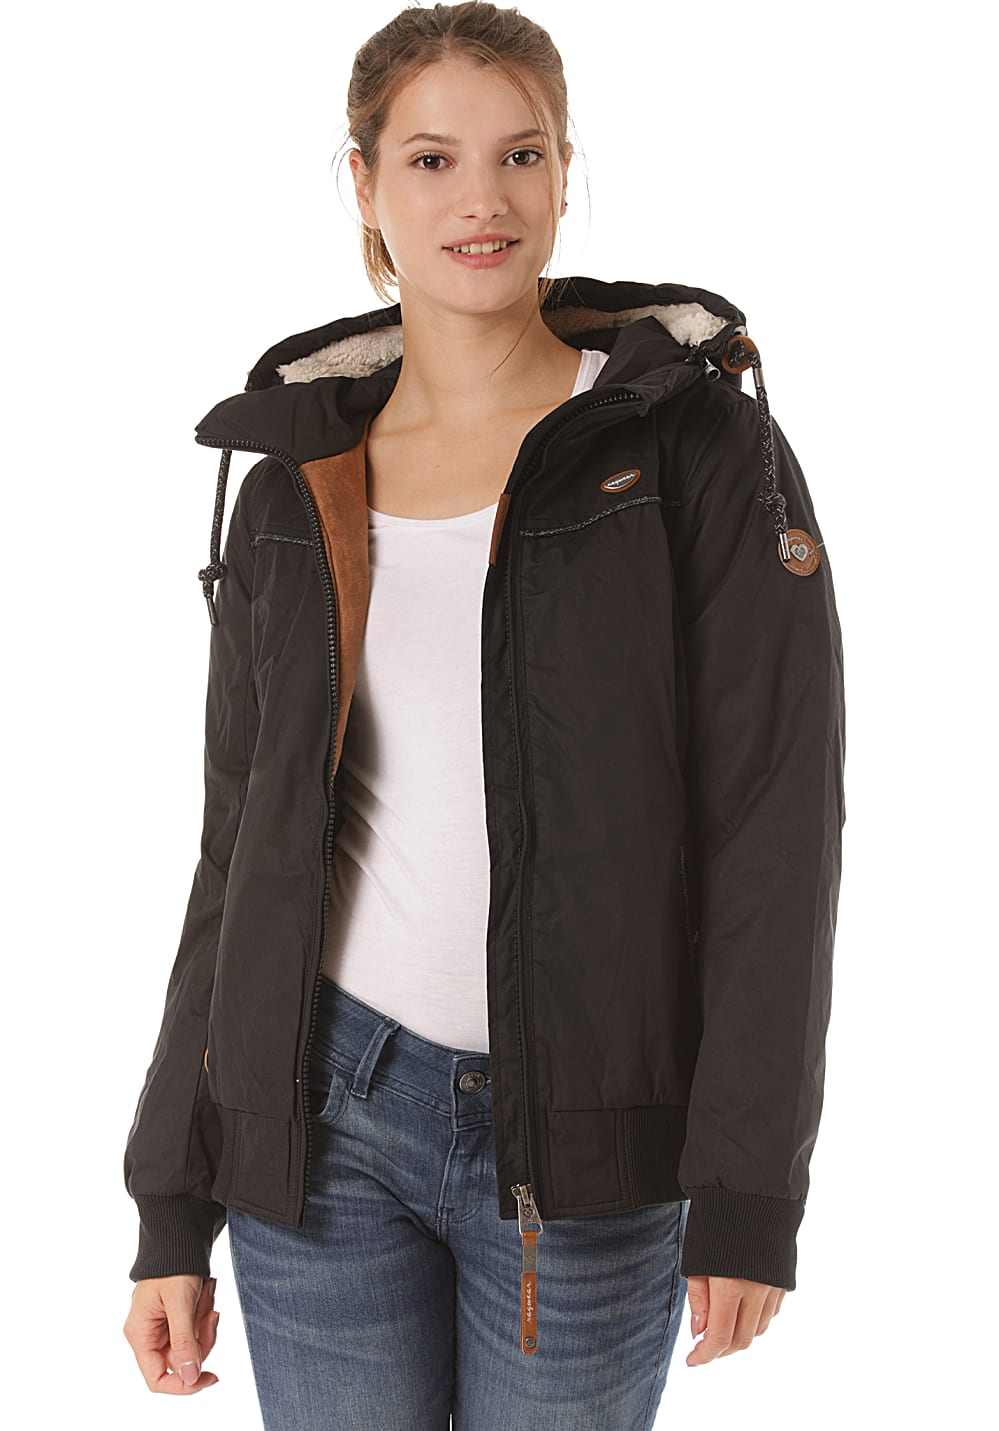 Jacken - ragwear Jotty Jacke für Damen Schwarz  - Onlineshop Planet Sports